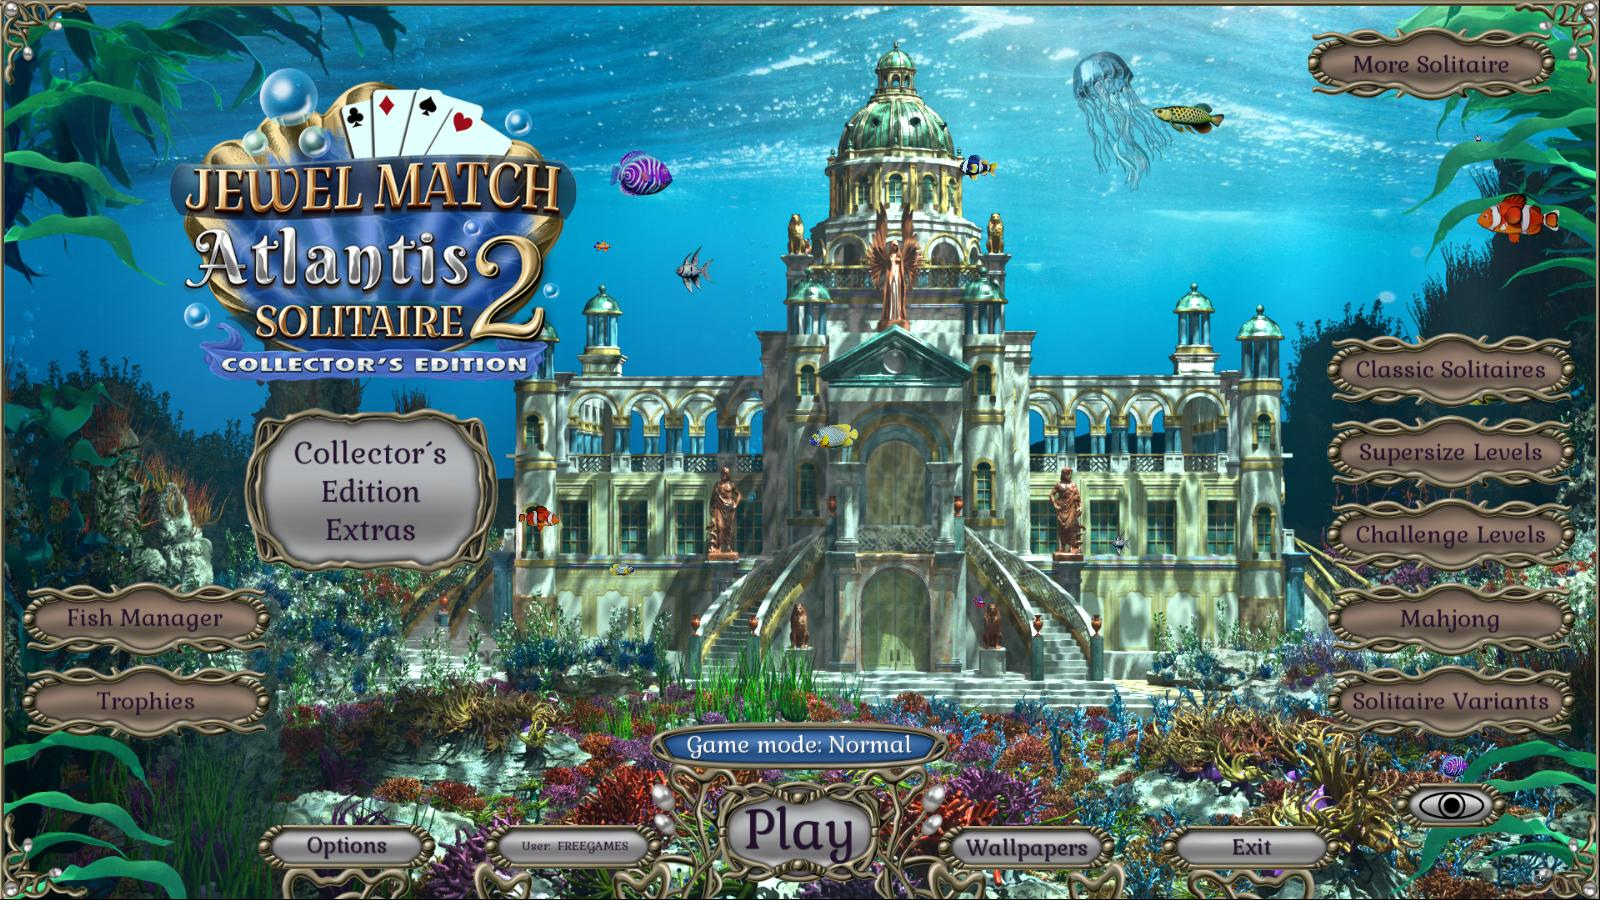 Jewel Match Atlantis Solitaire 2 CE (En)